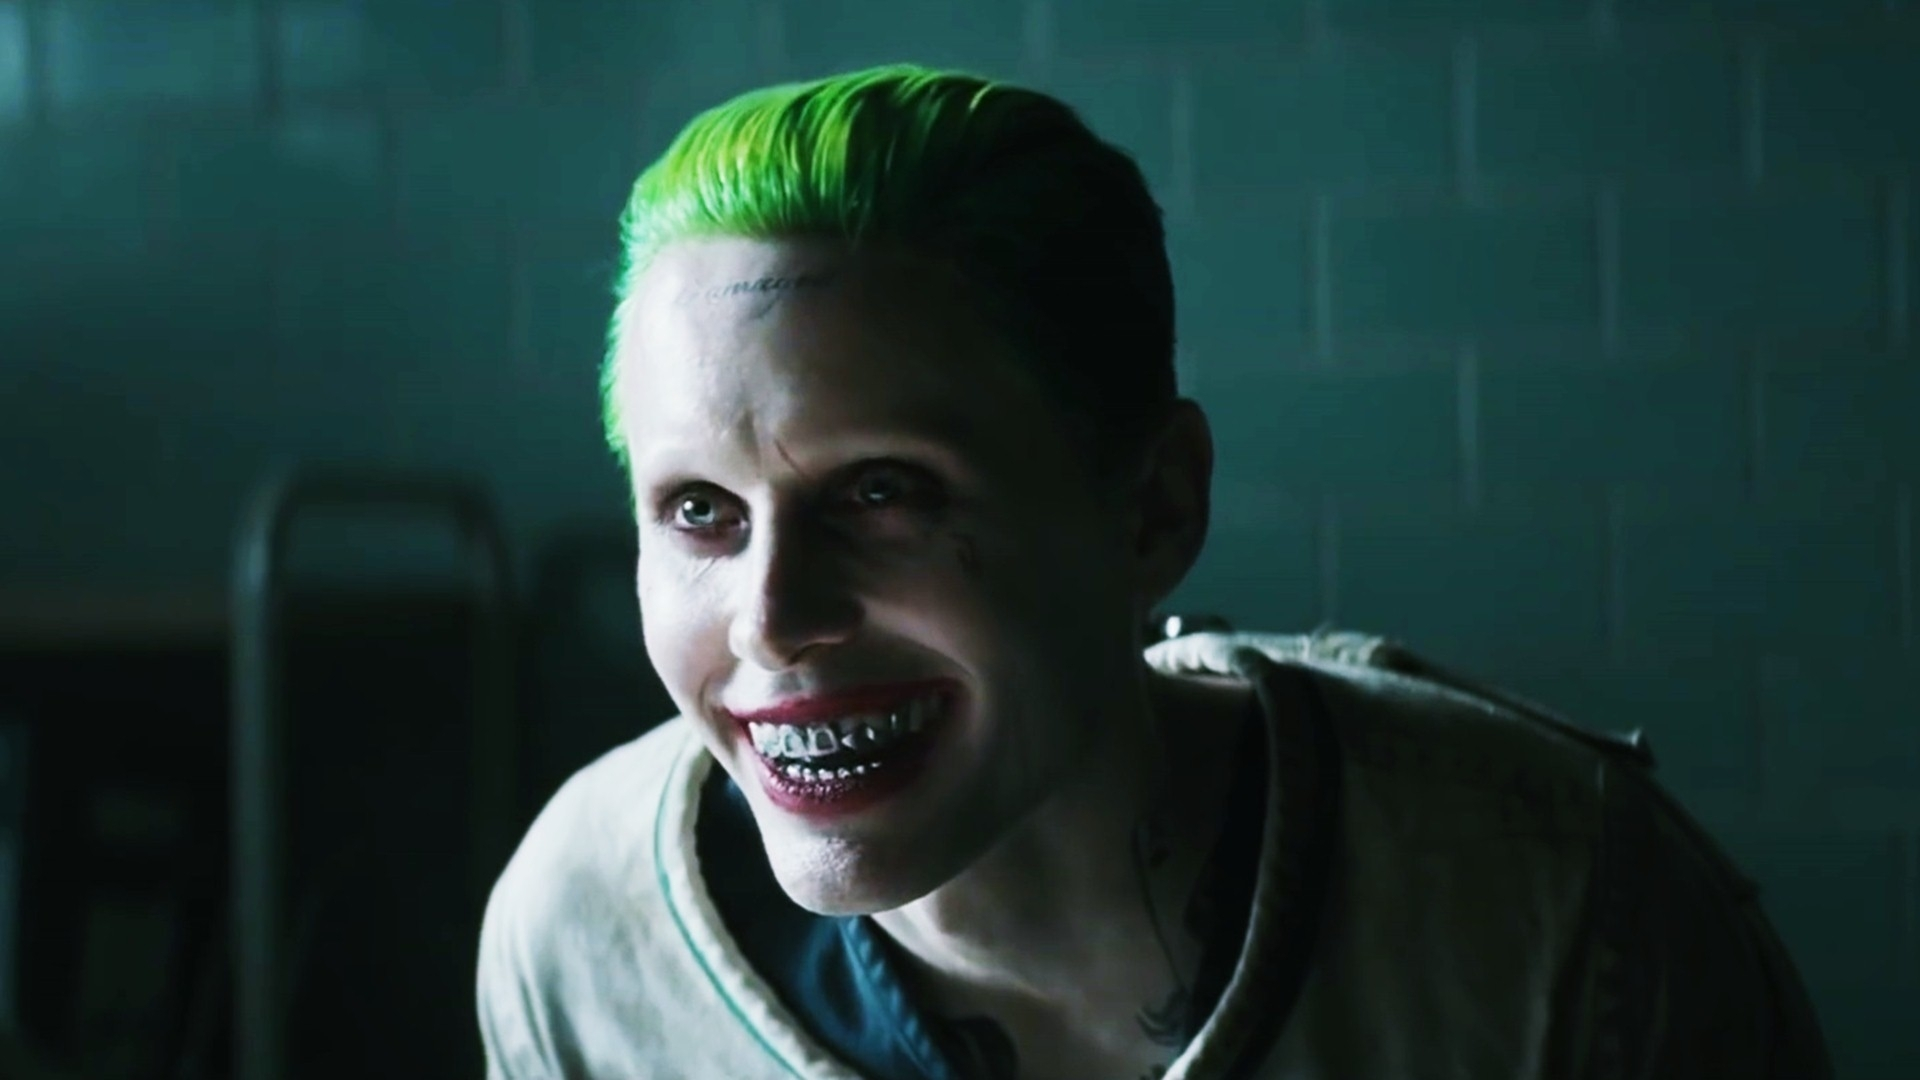 suicide squad joker wallpaper (73+ images)